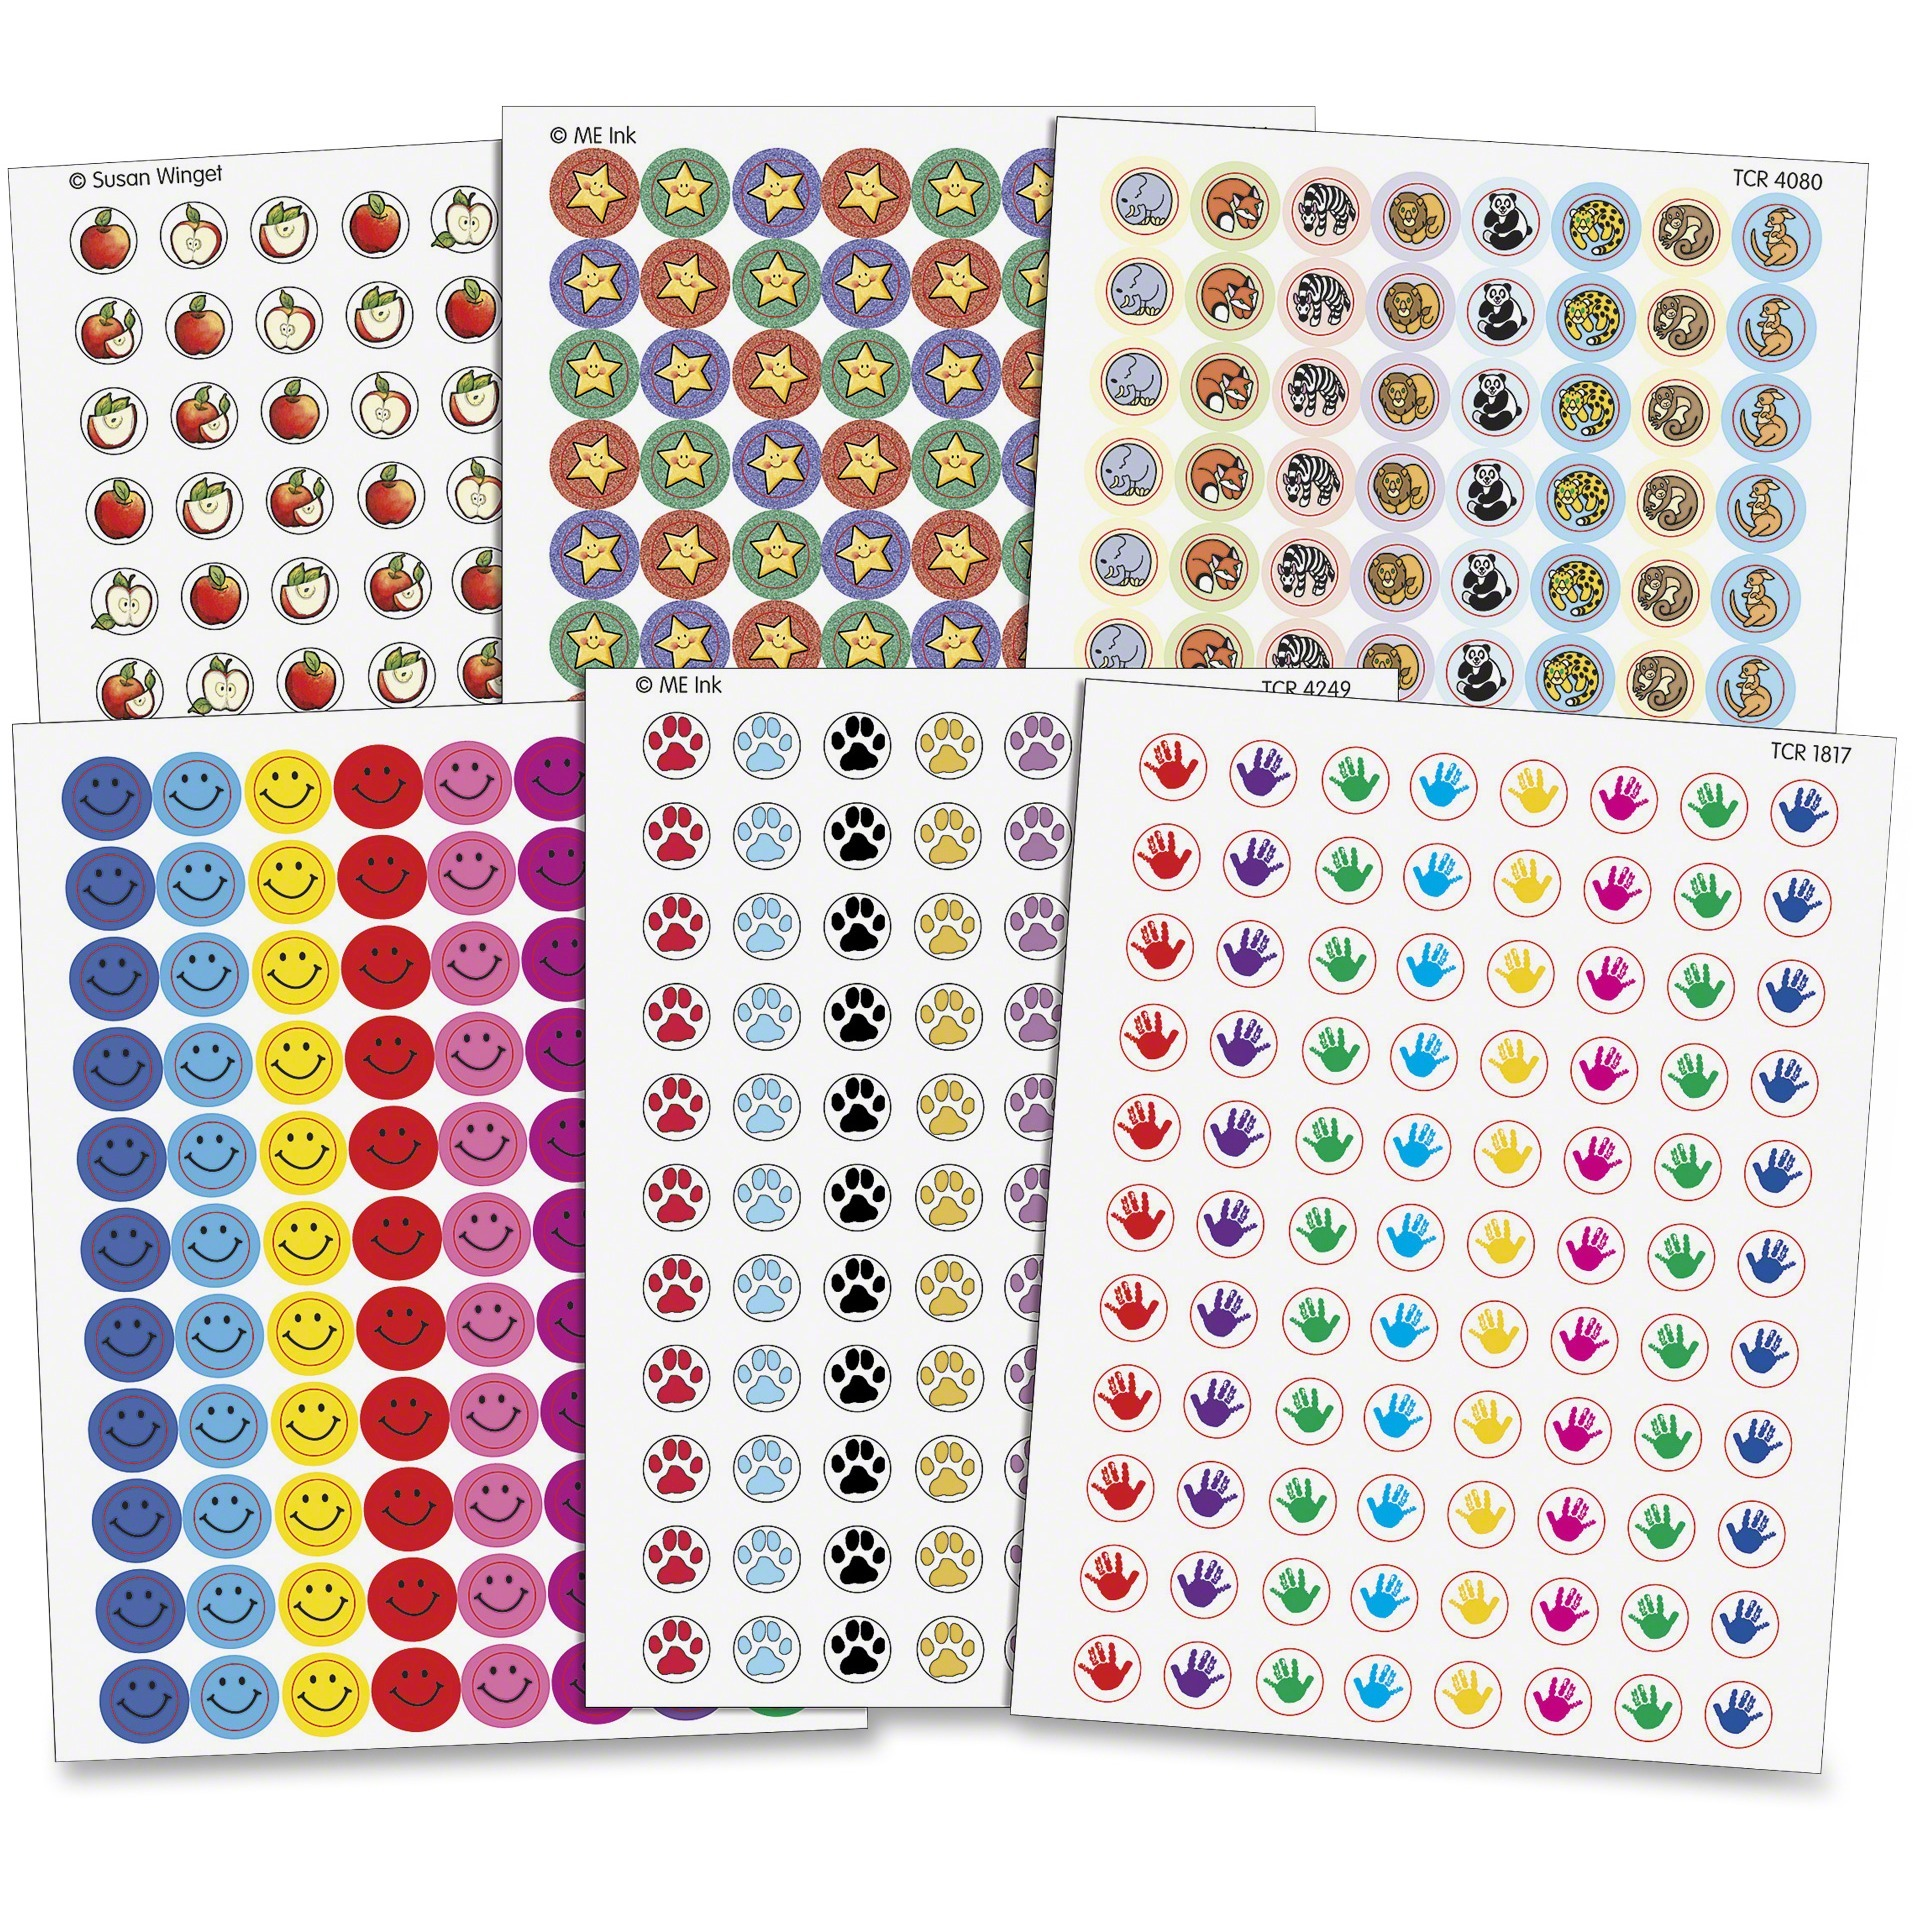 Teacher Created Resources, TCR9029, Assorted Stickers Pack, 6 / Pack, Assorted